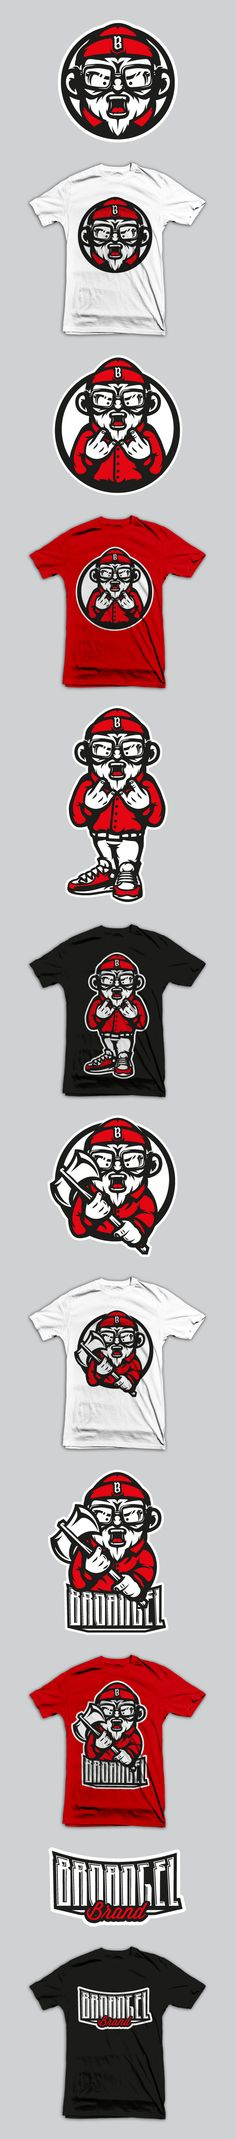 BroAngel Brand by Akuma101 , via Behance